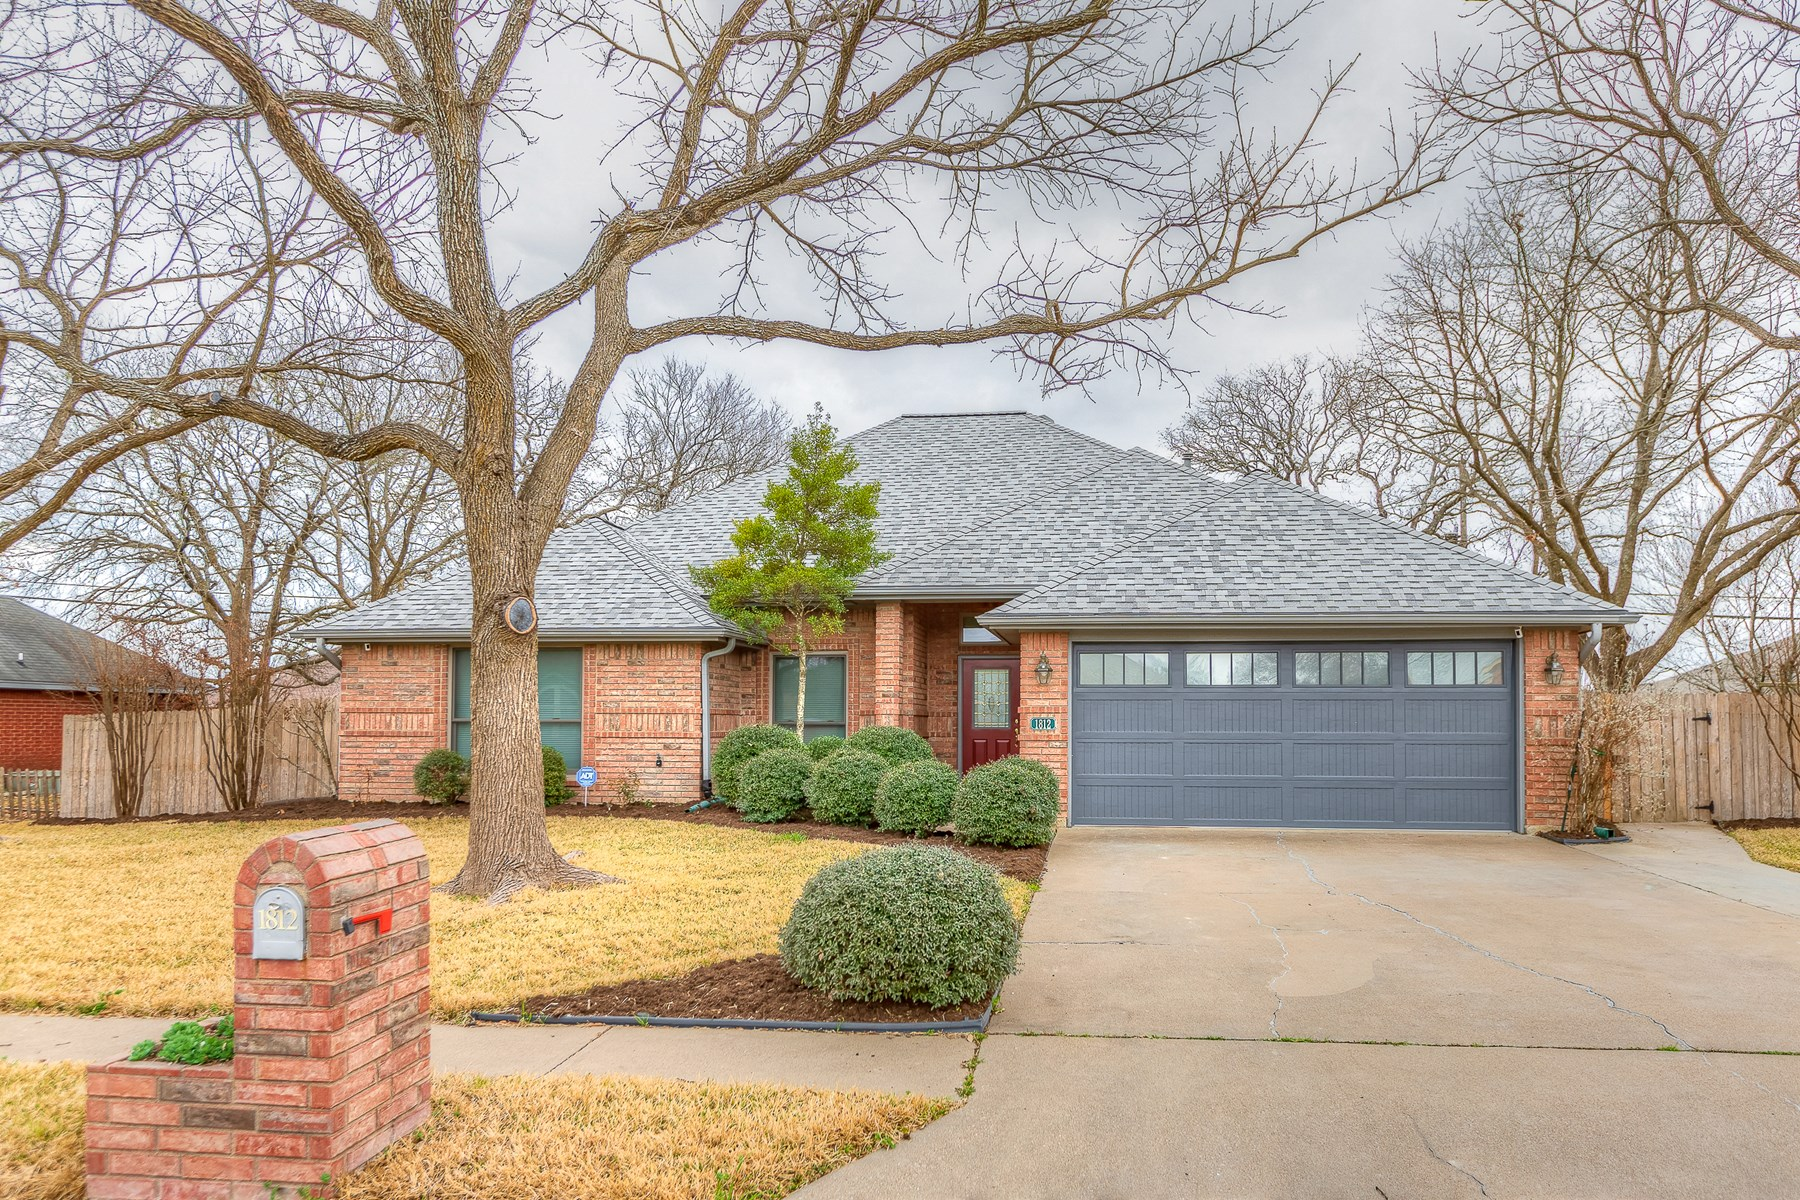 4 Bed 2 Bath Home For Sale Copperas Cove TX  Thousand Oaks!